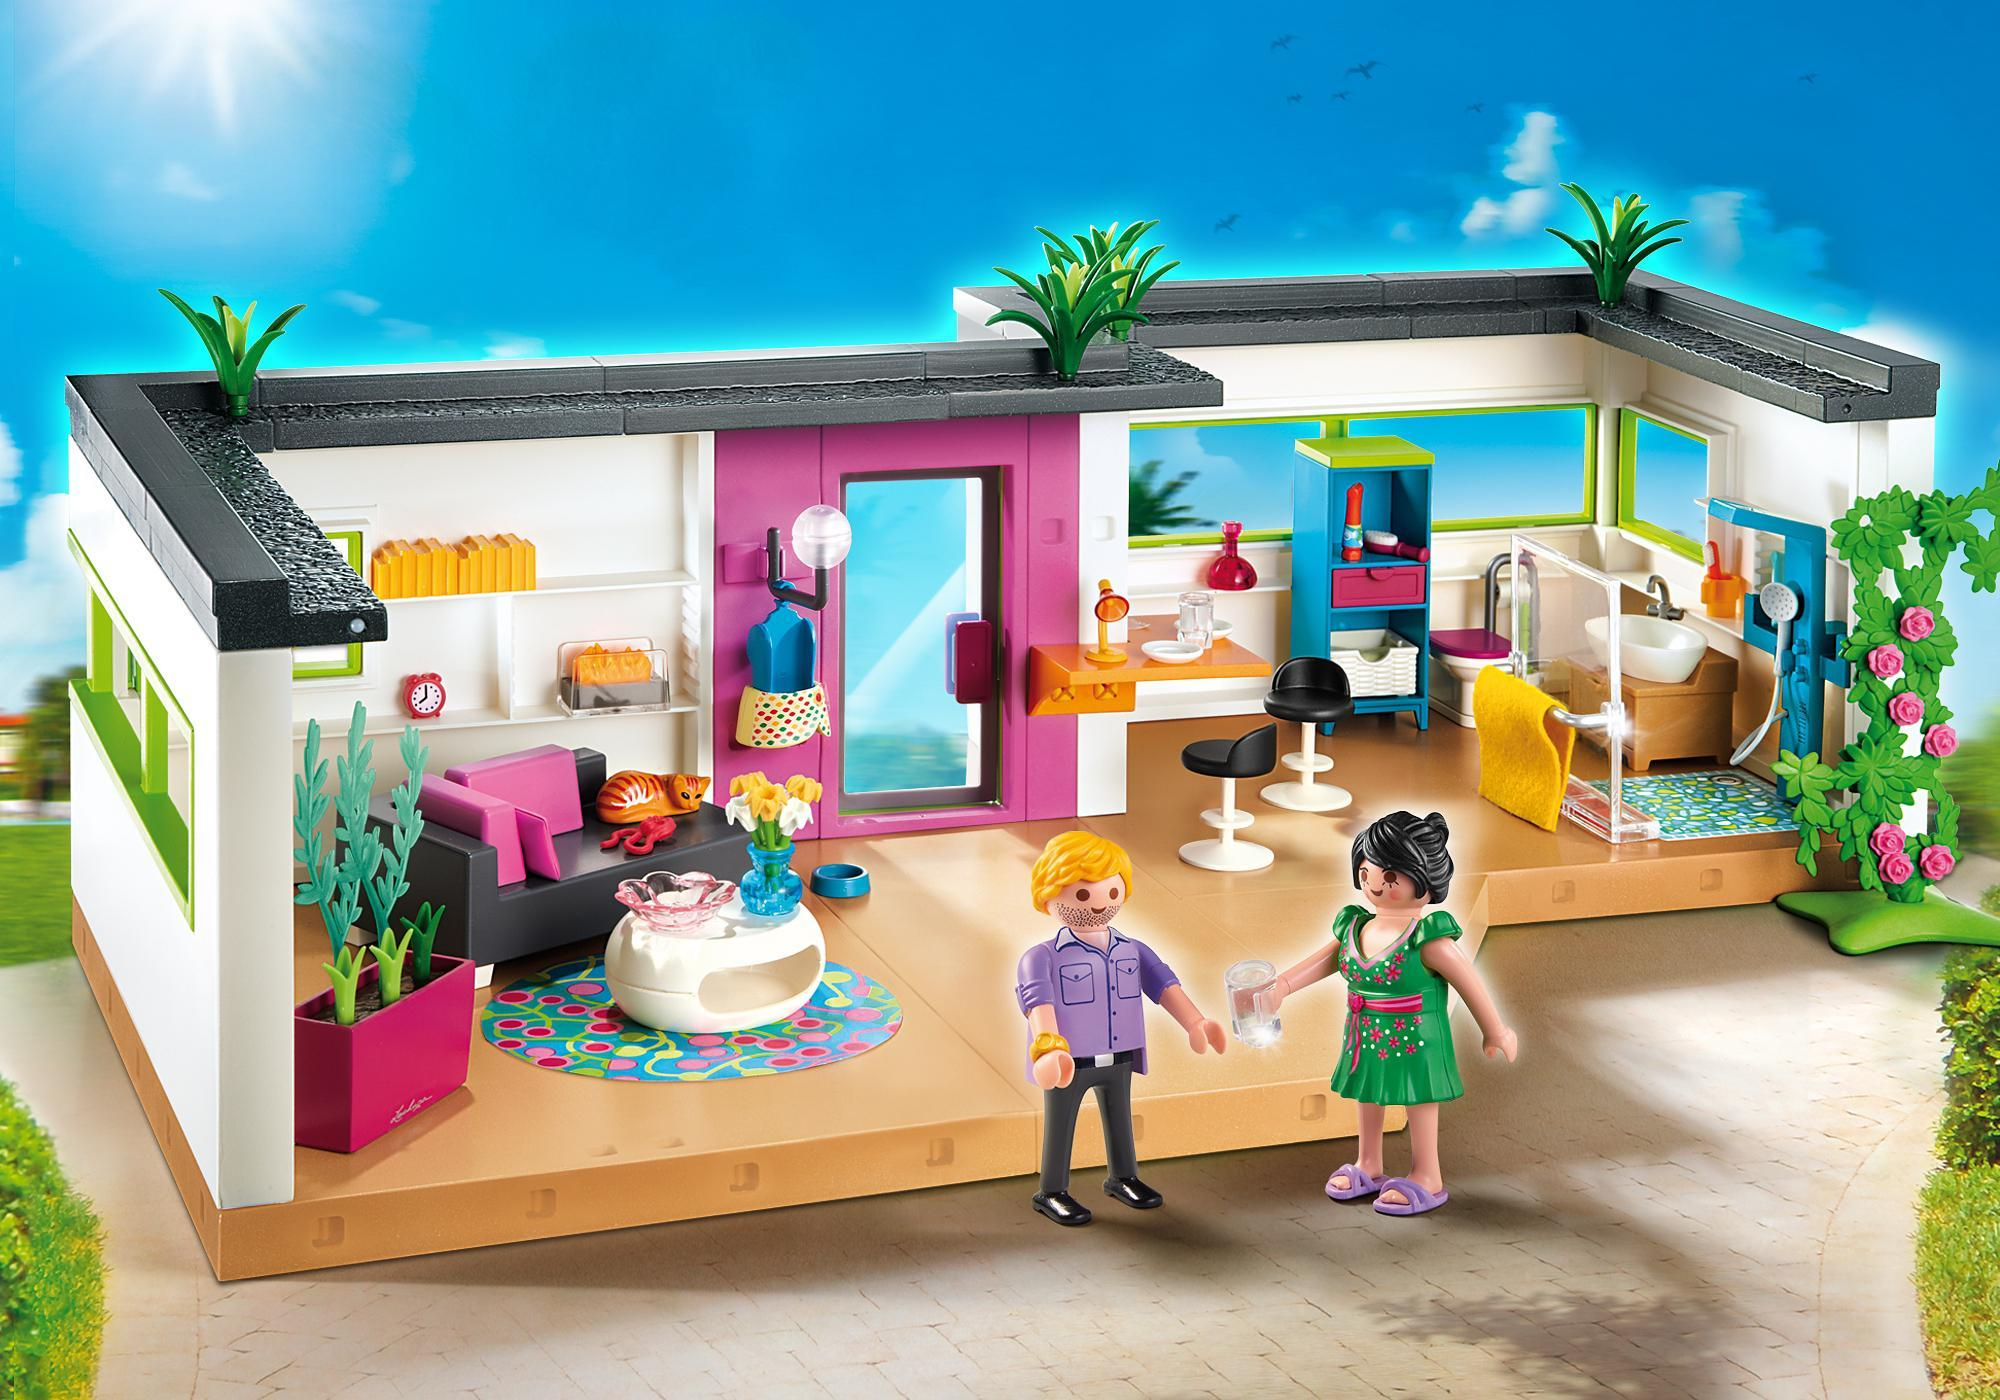 http://media.playmobil.com/i/playmobil/5586_product_detail/Gästsvit